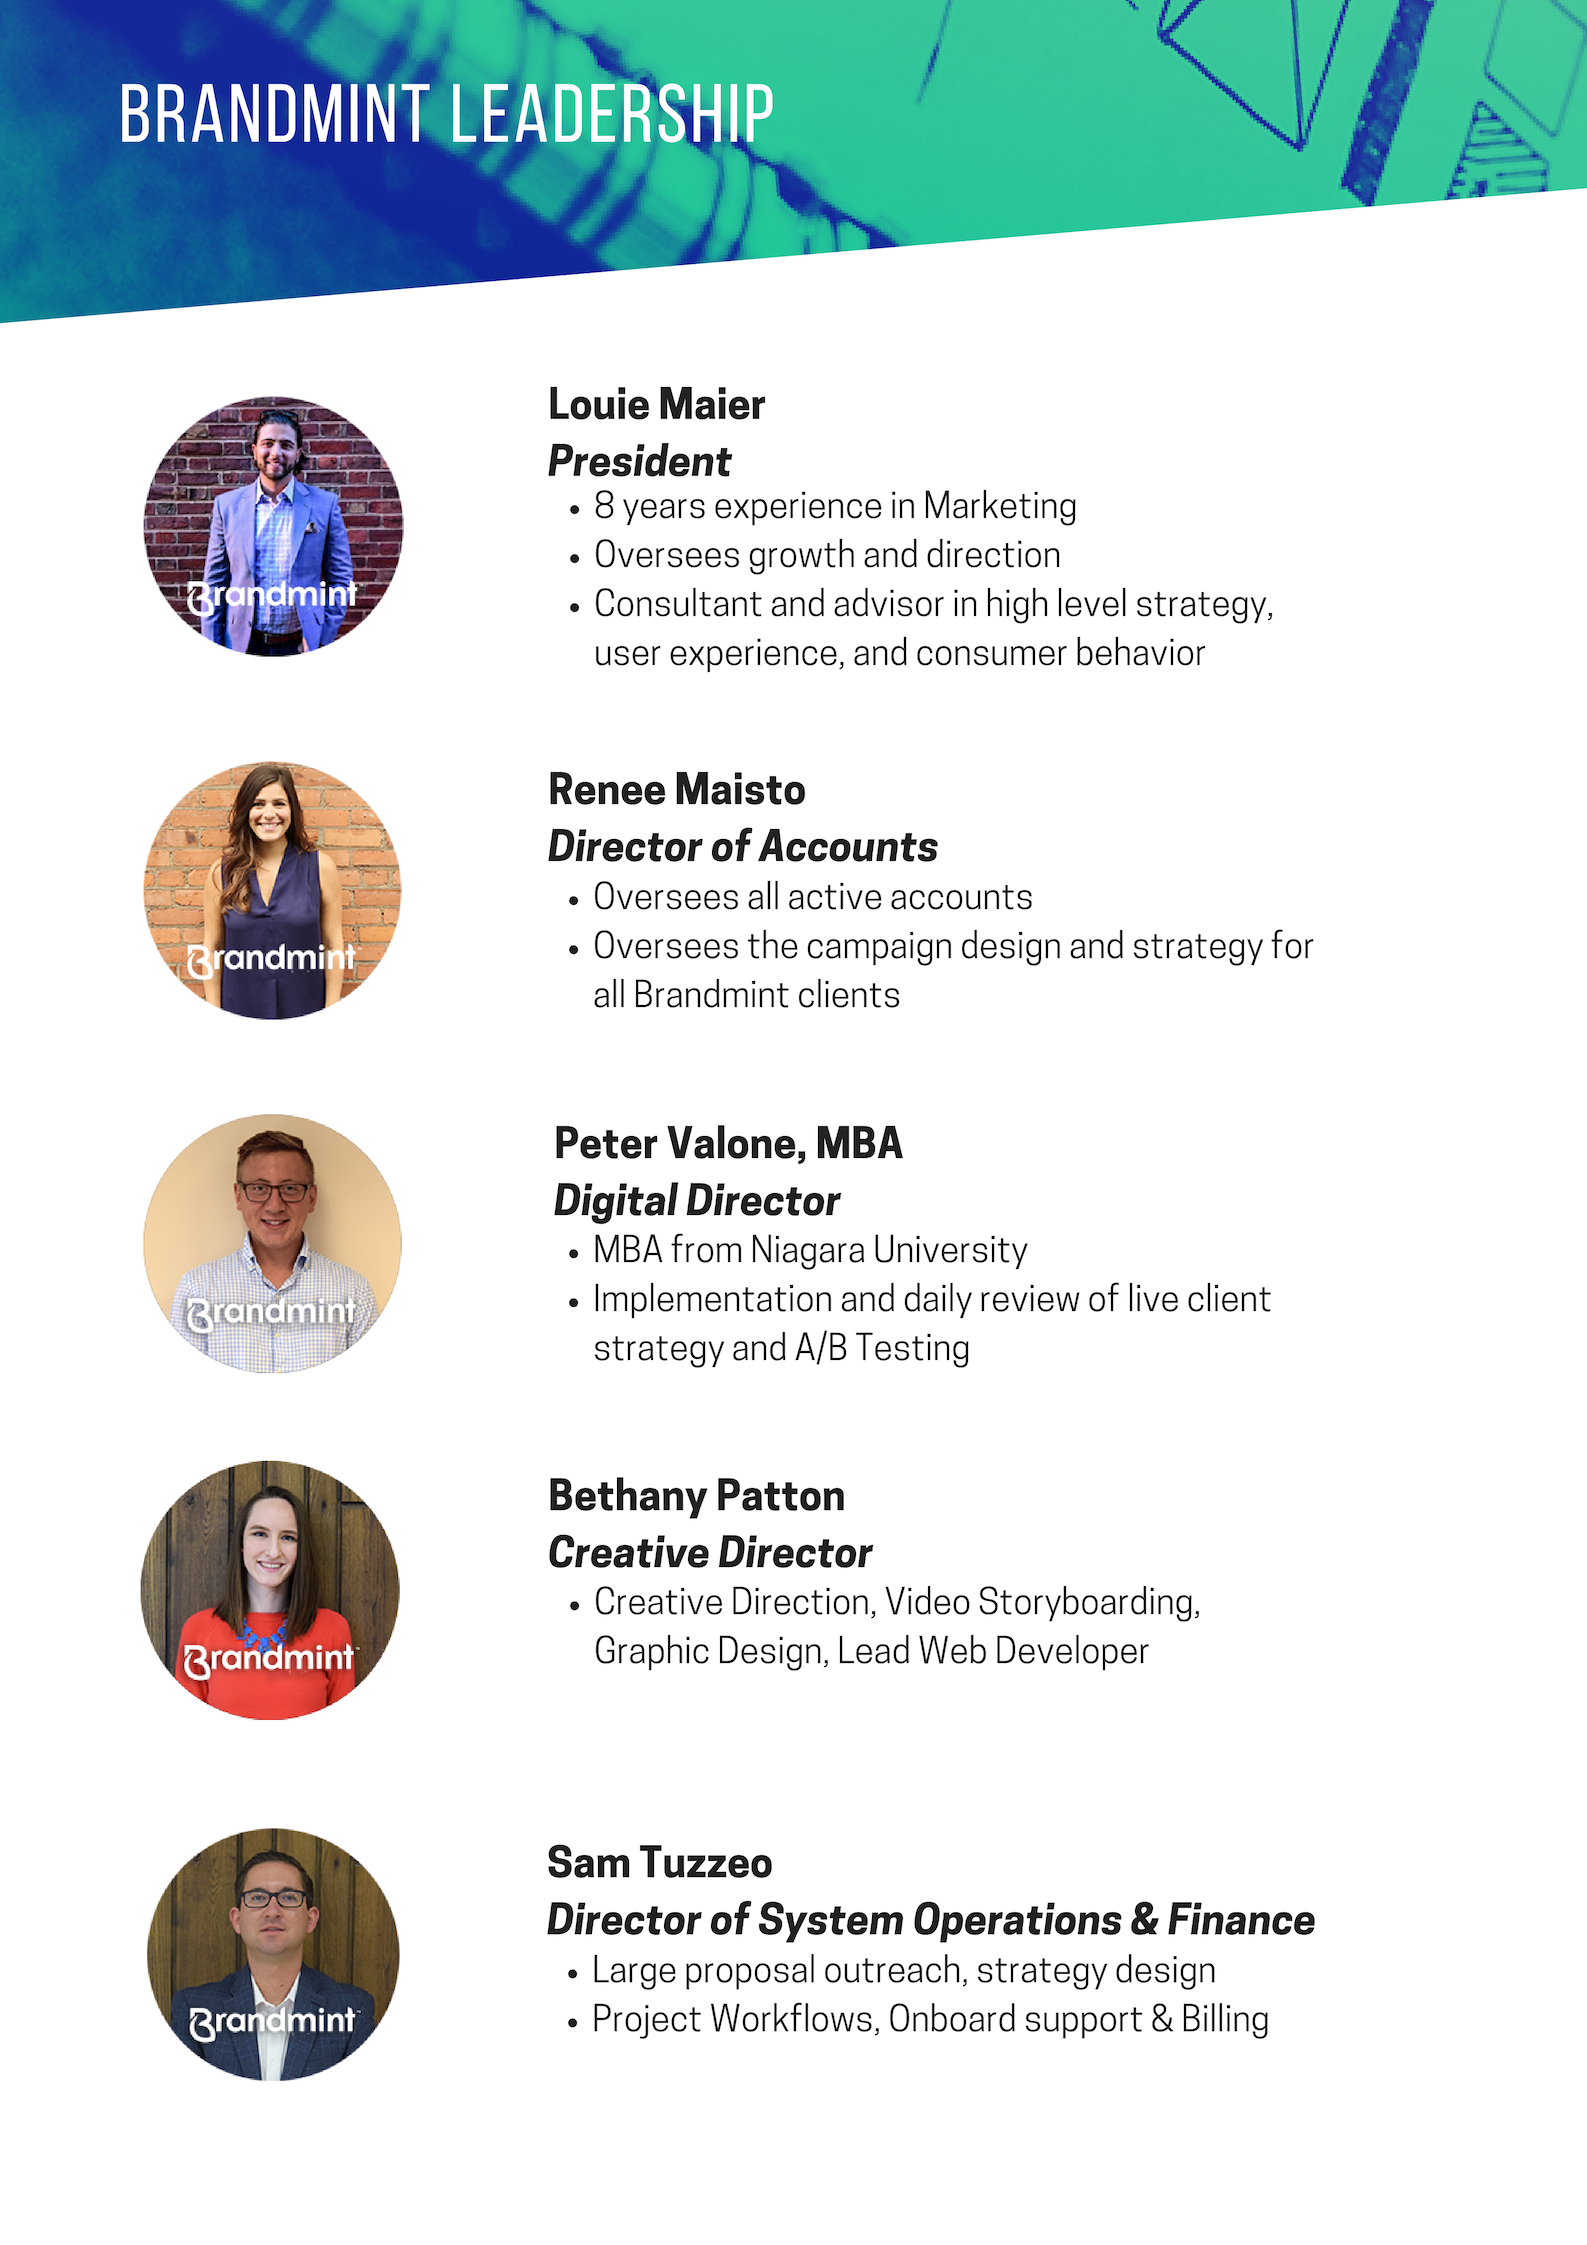 Meet the team - Leadership